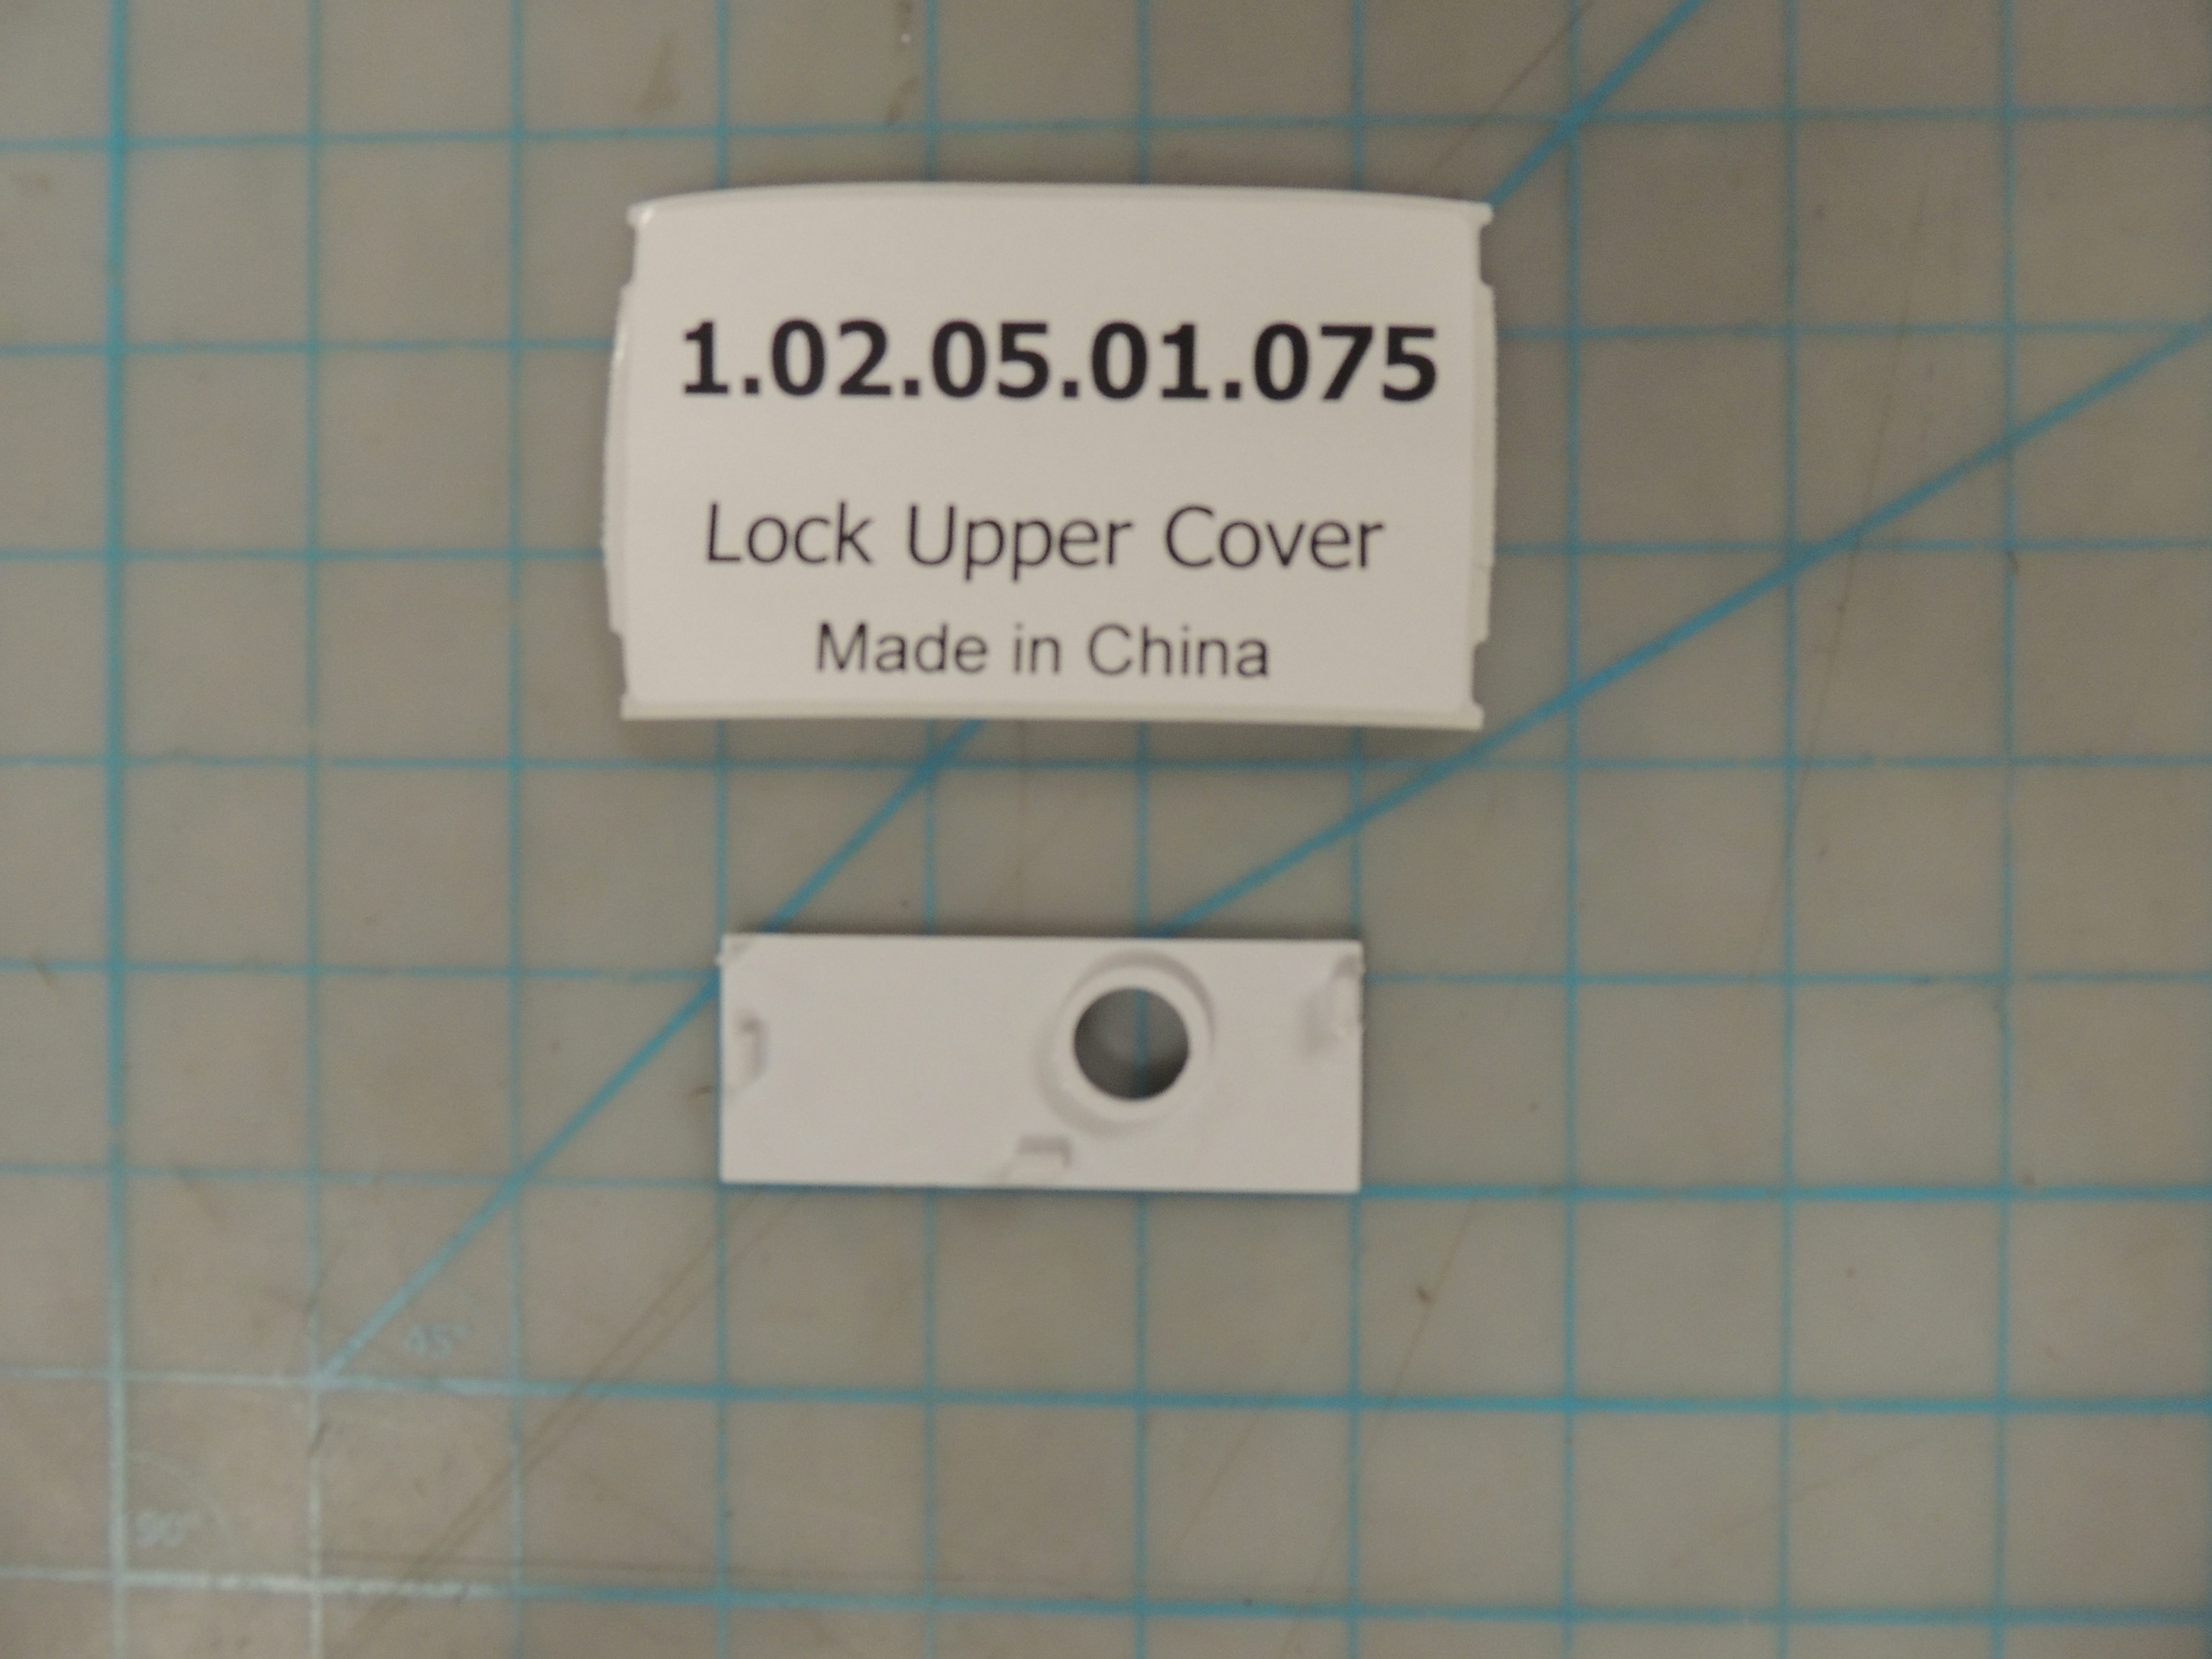 Lock Upper Cover